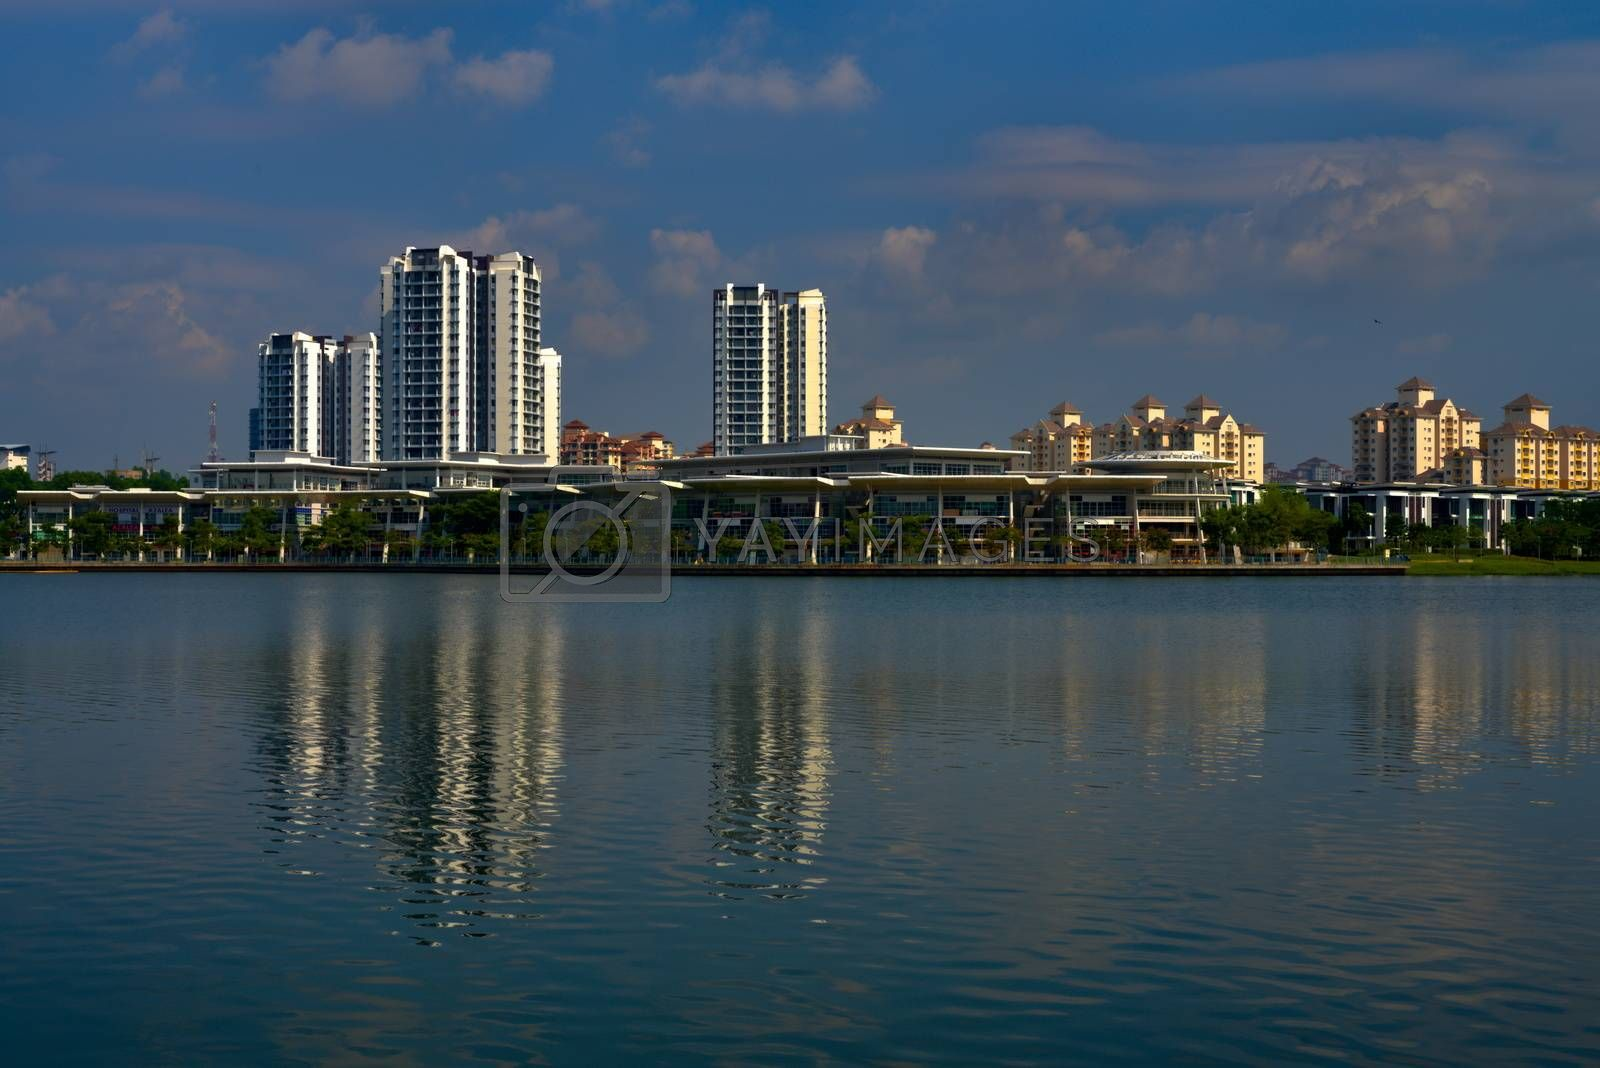 Putrajaya lake with residential area and skyscrapers